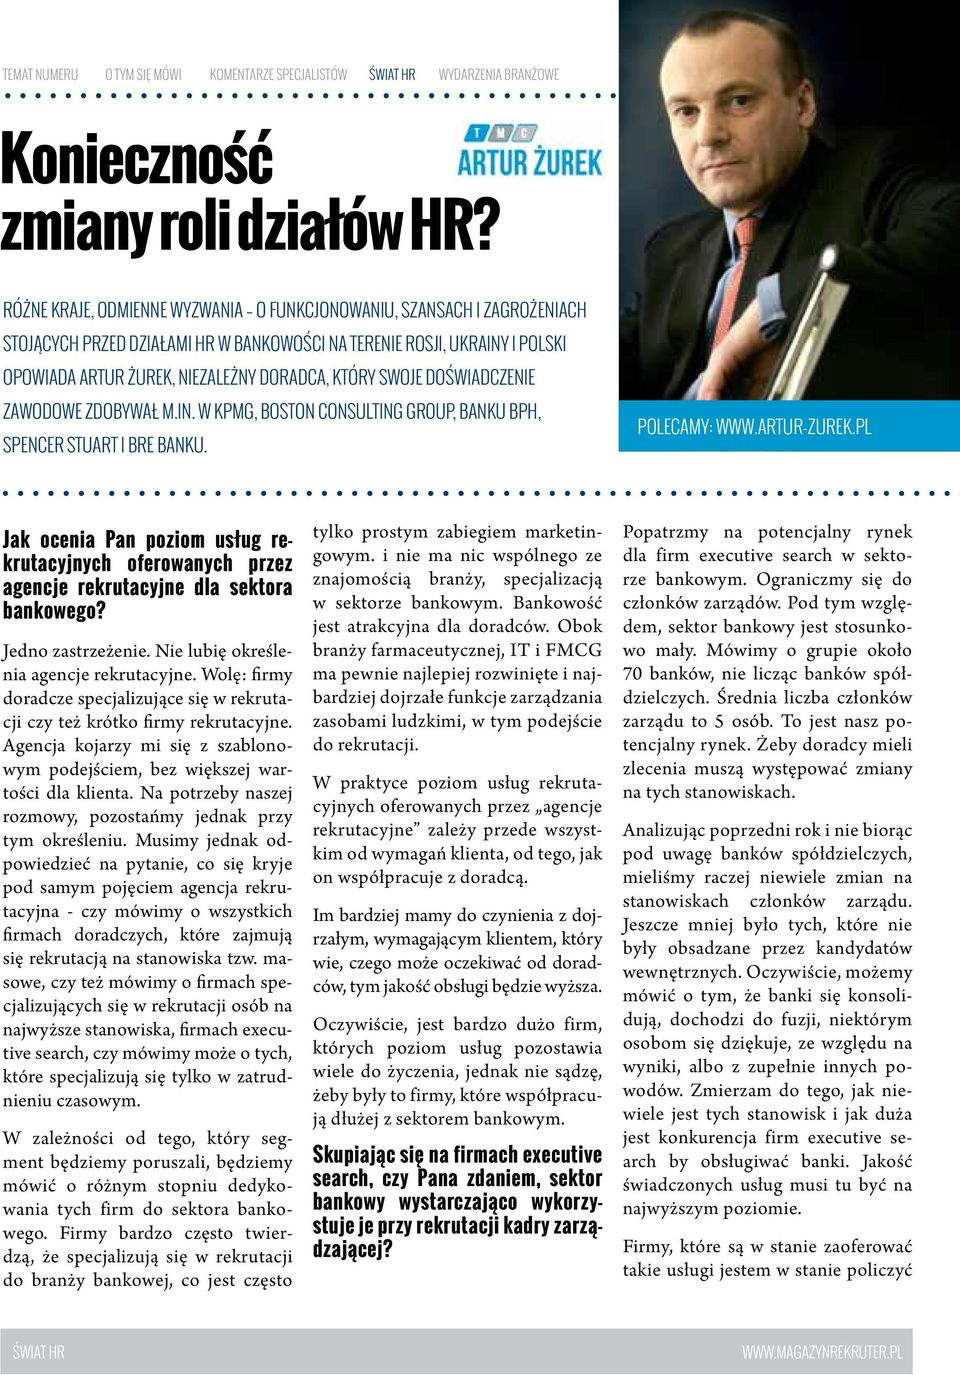 swoje doświadczenie zawodowe zdobywał m.in. w KPMG, Boston Consulting Group, Banku BPH, Spencer Stuart i BRE Banku. POLECAMY: www.artur-zurek.